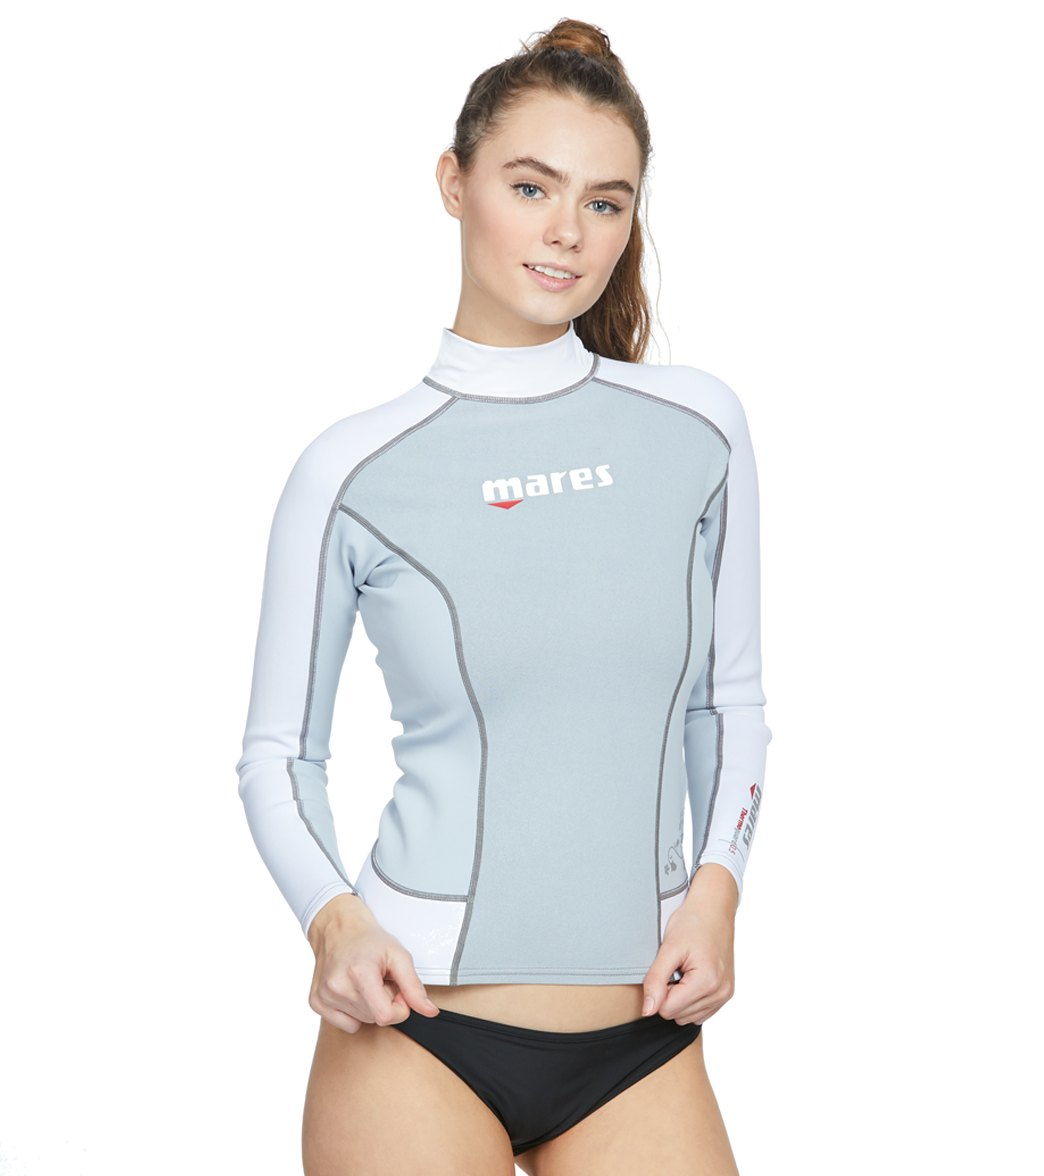 ed46808236543 Mares Women's Thermo Guard Long Sleeve Rashguard at SwimOutlet.com - Free  Shipping